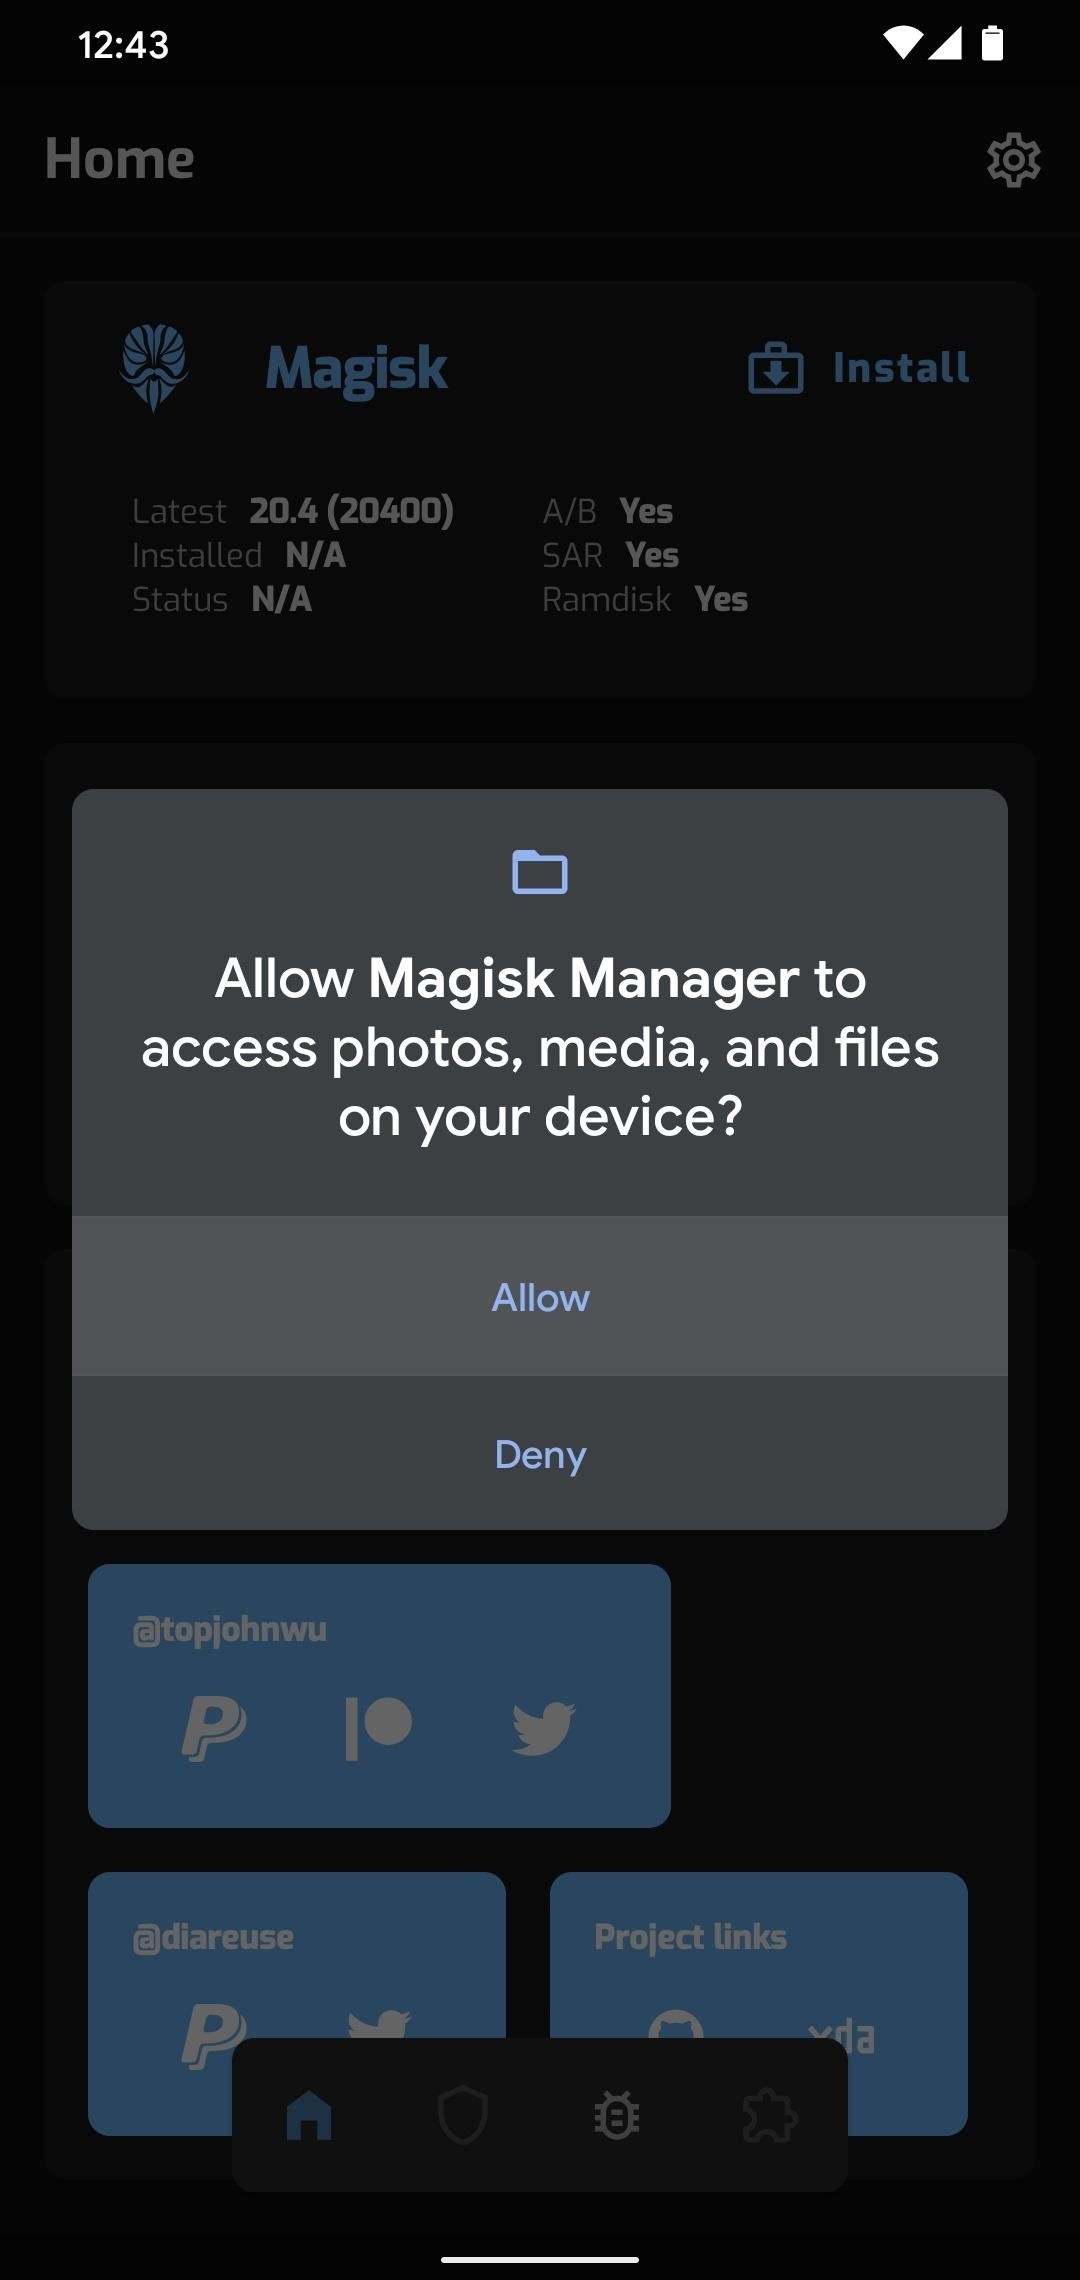 How to Root Android 11 Using Magisk - The Foolproof Guide